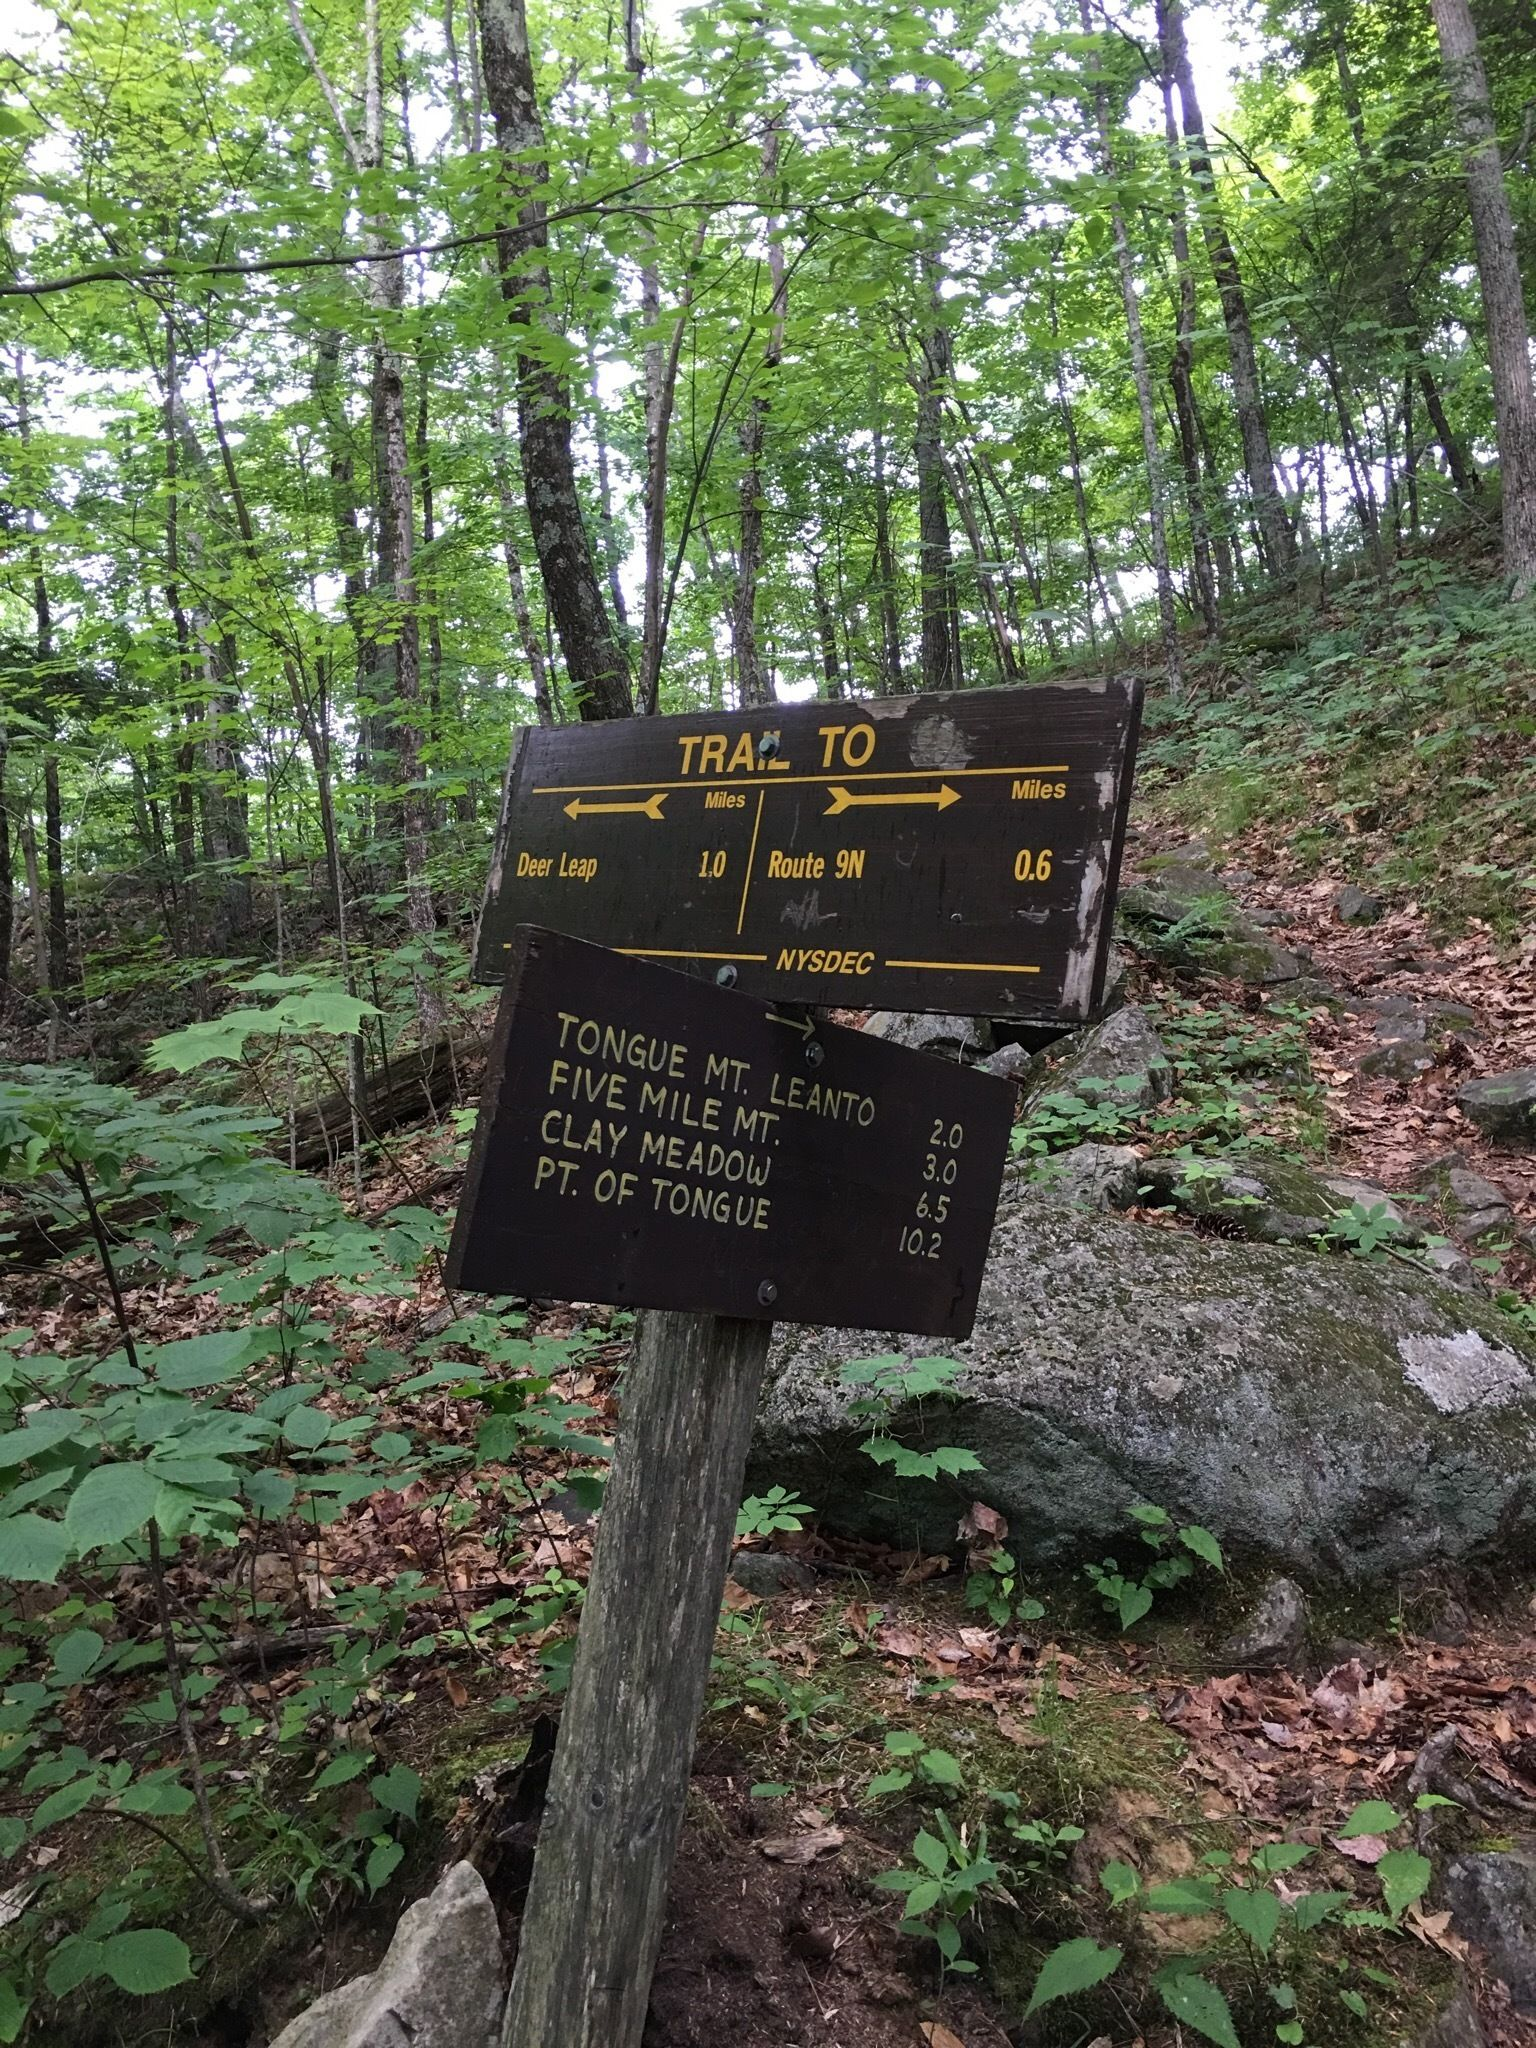 Five Mile Mountain Trail